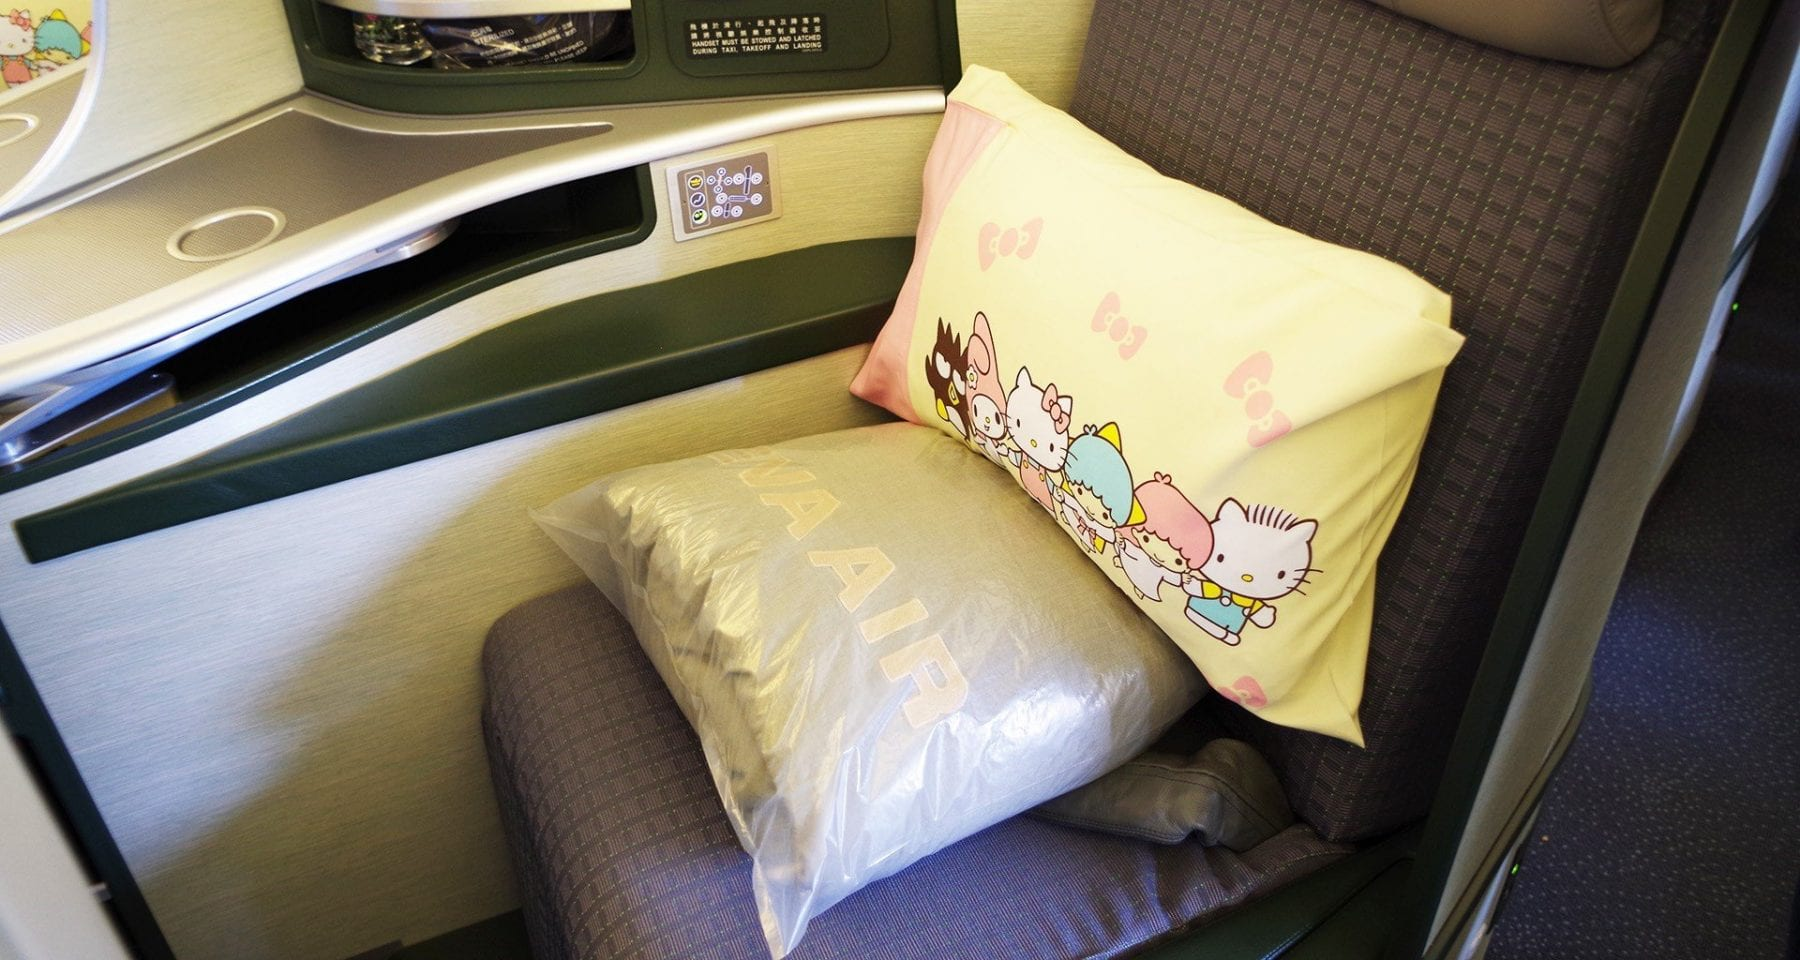 Eva Air Hello Kitty pillow and blanket